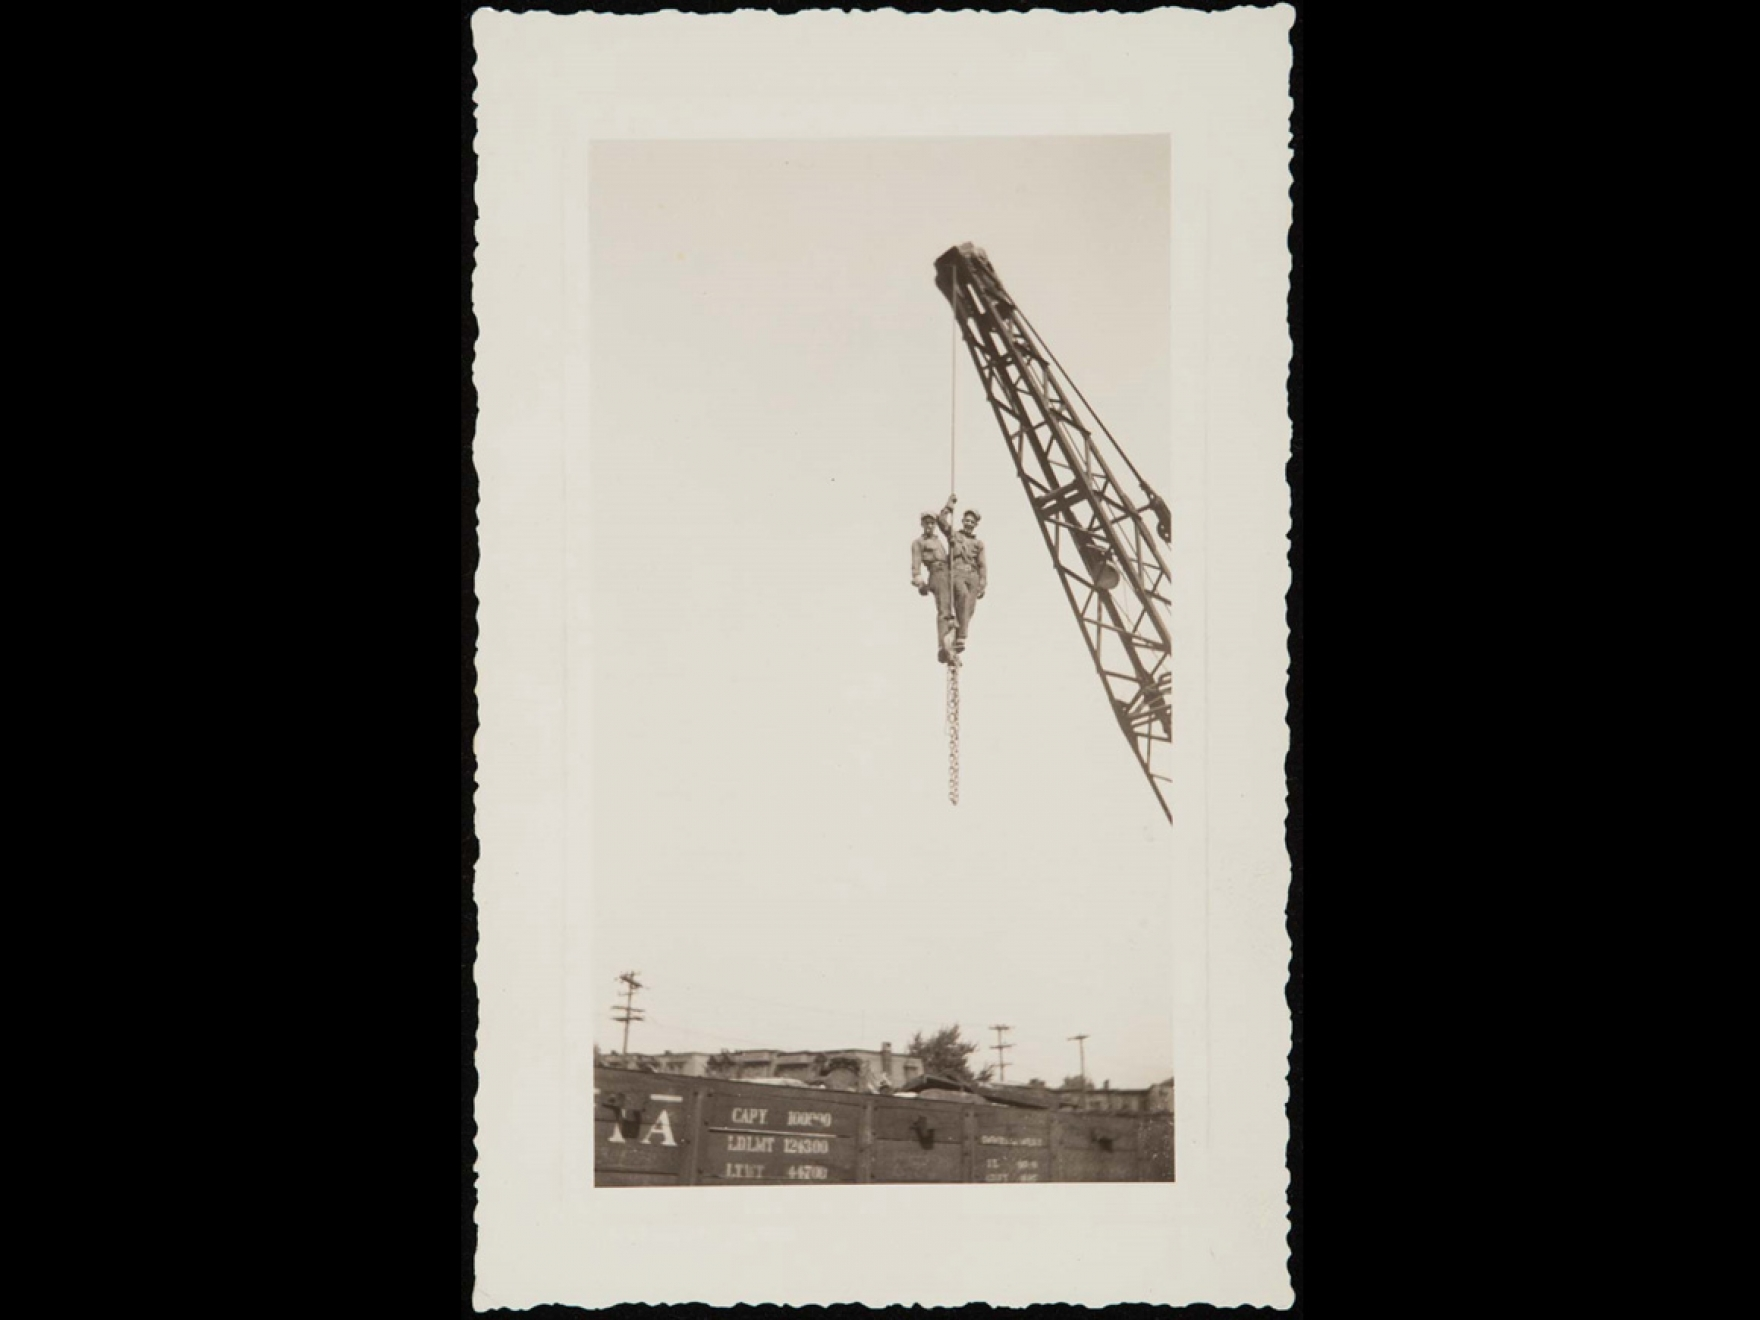 Two men hanging from a crane